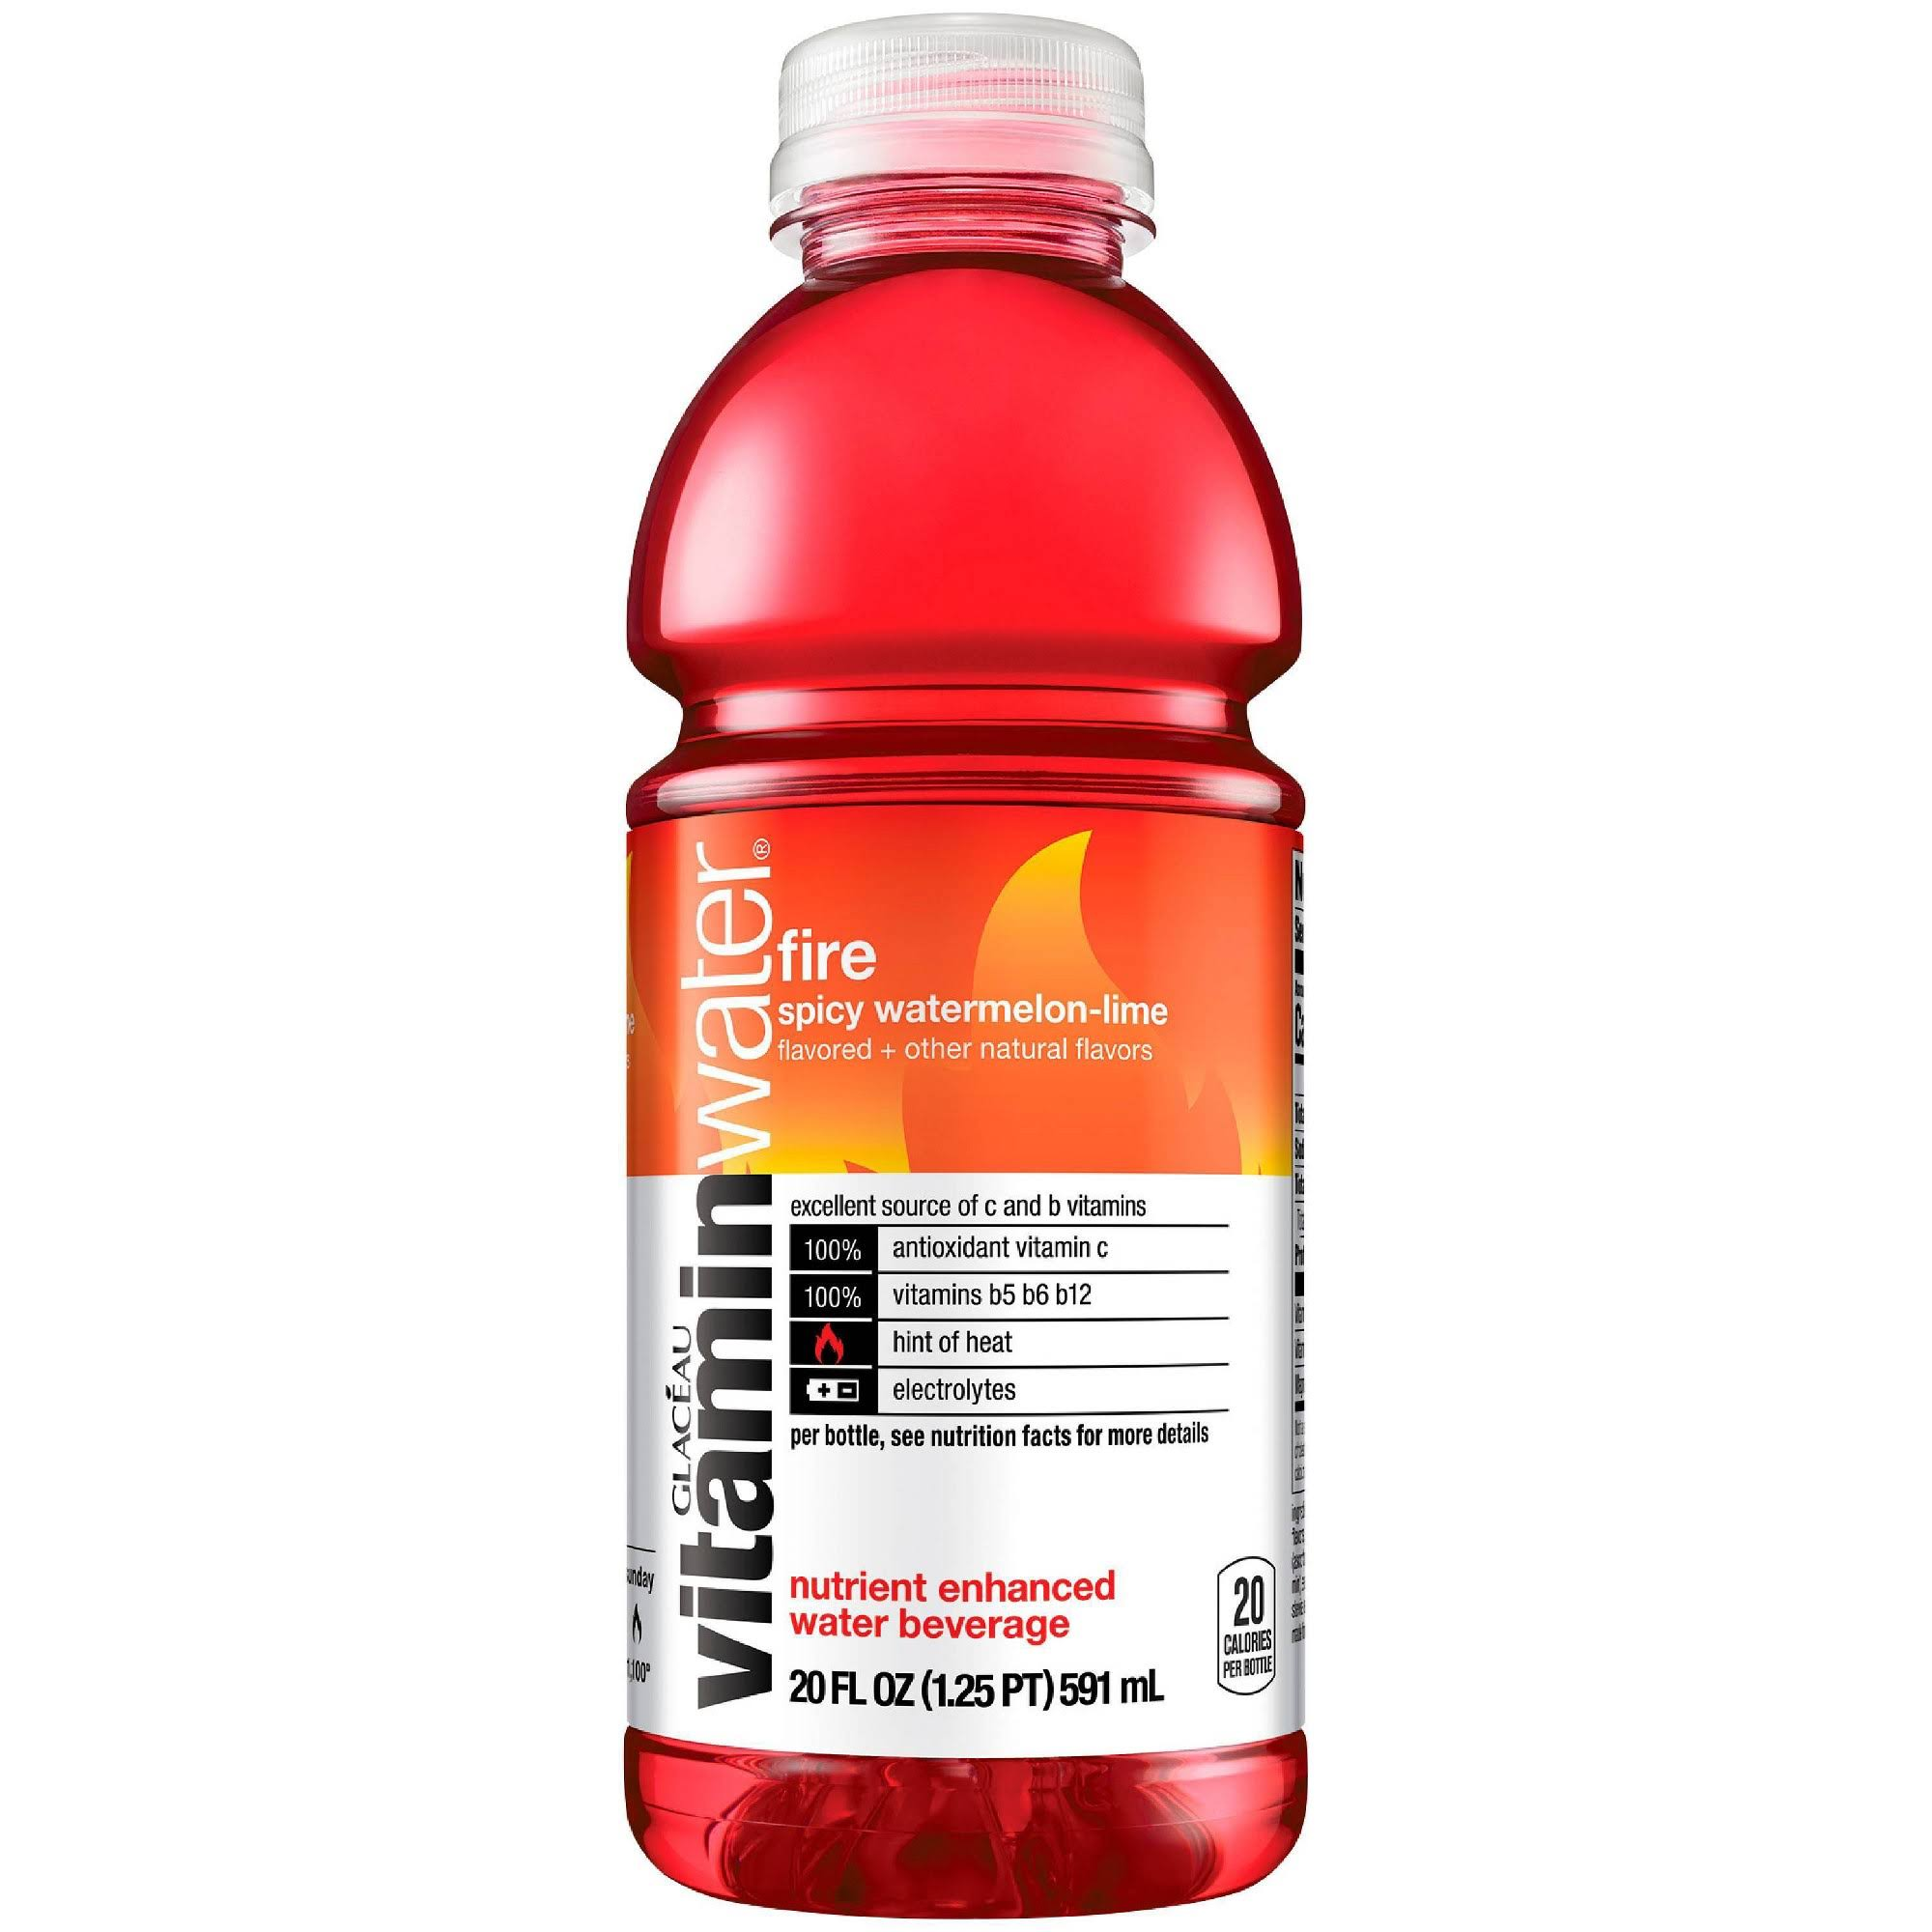 Glaceau Vitamin Water, Fire, Spicy Watermelon-Lime - 20 fl oz